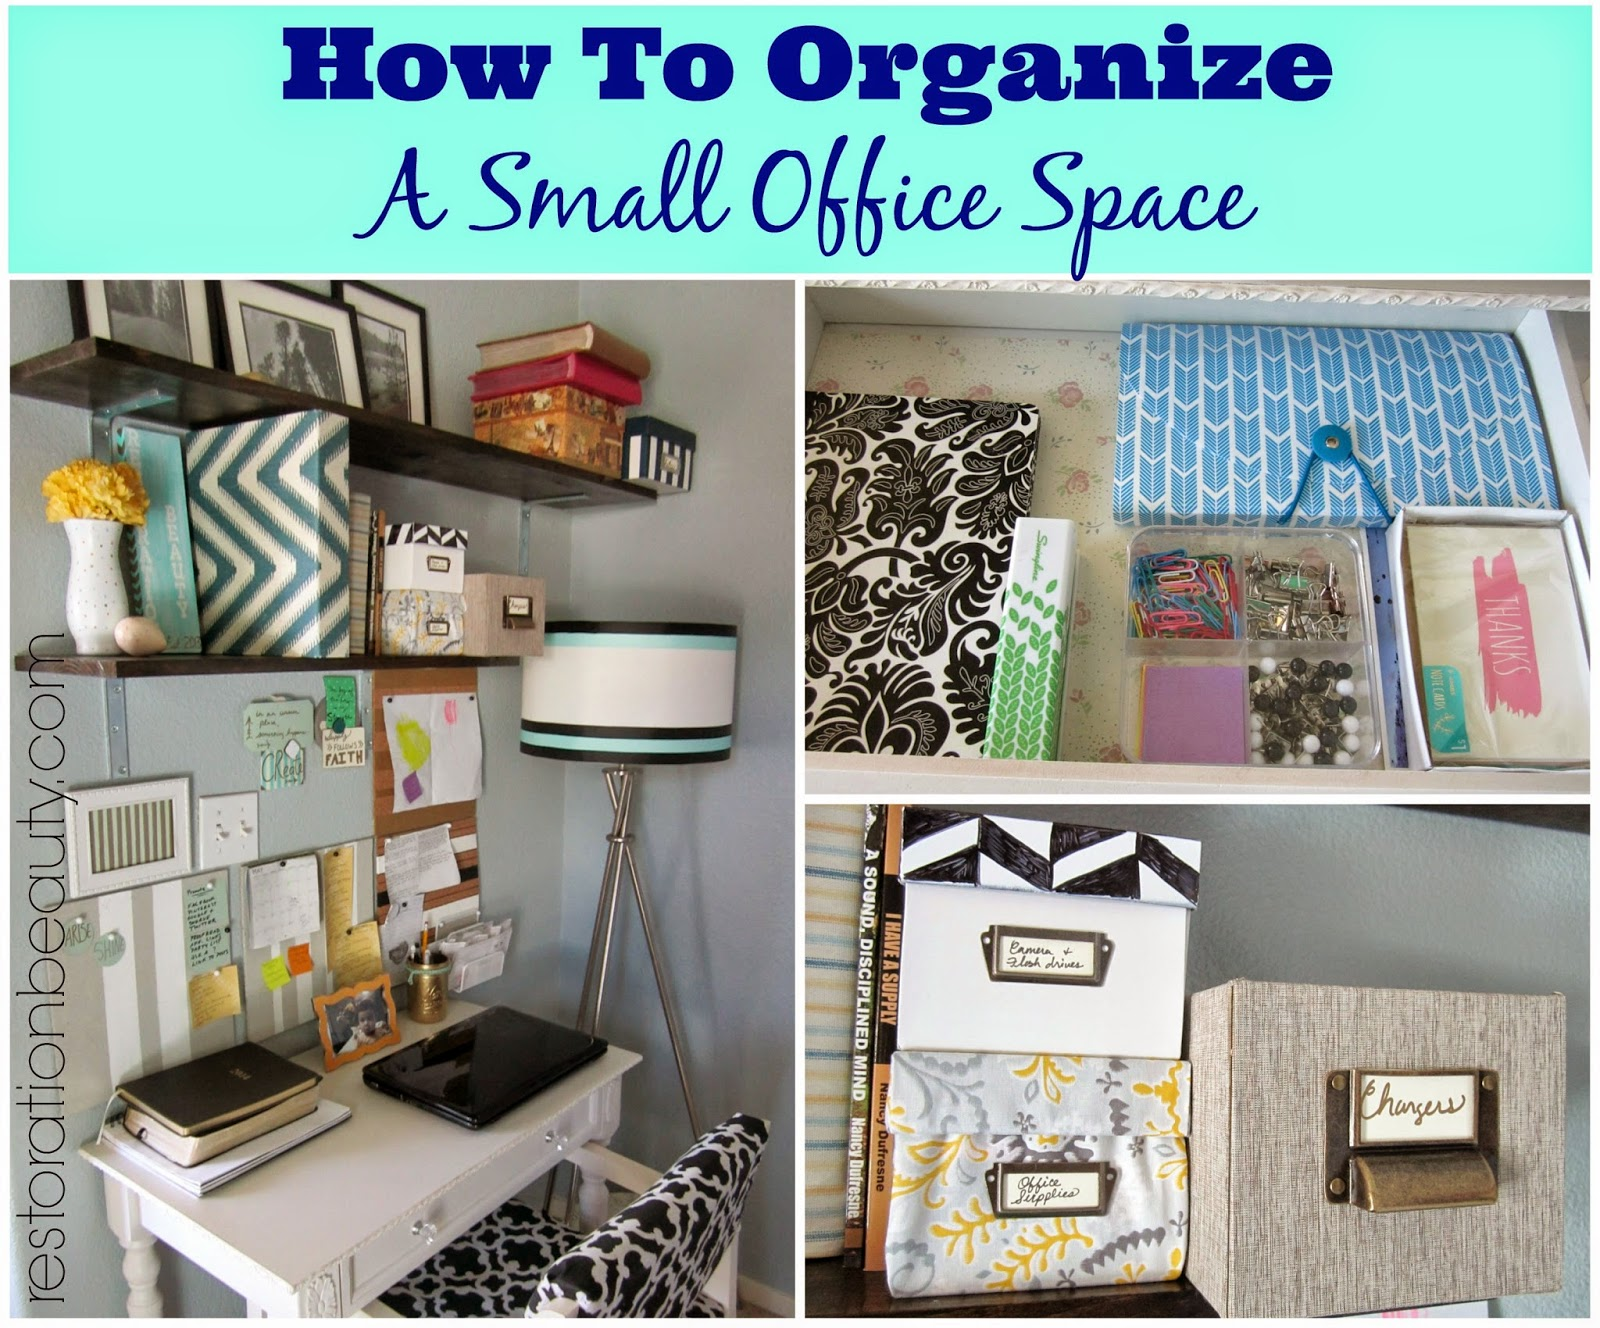 6 Organizing Tricks to Steal From This Teeny Office The constrains of a small space lead to some creative storage solutions.